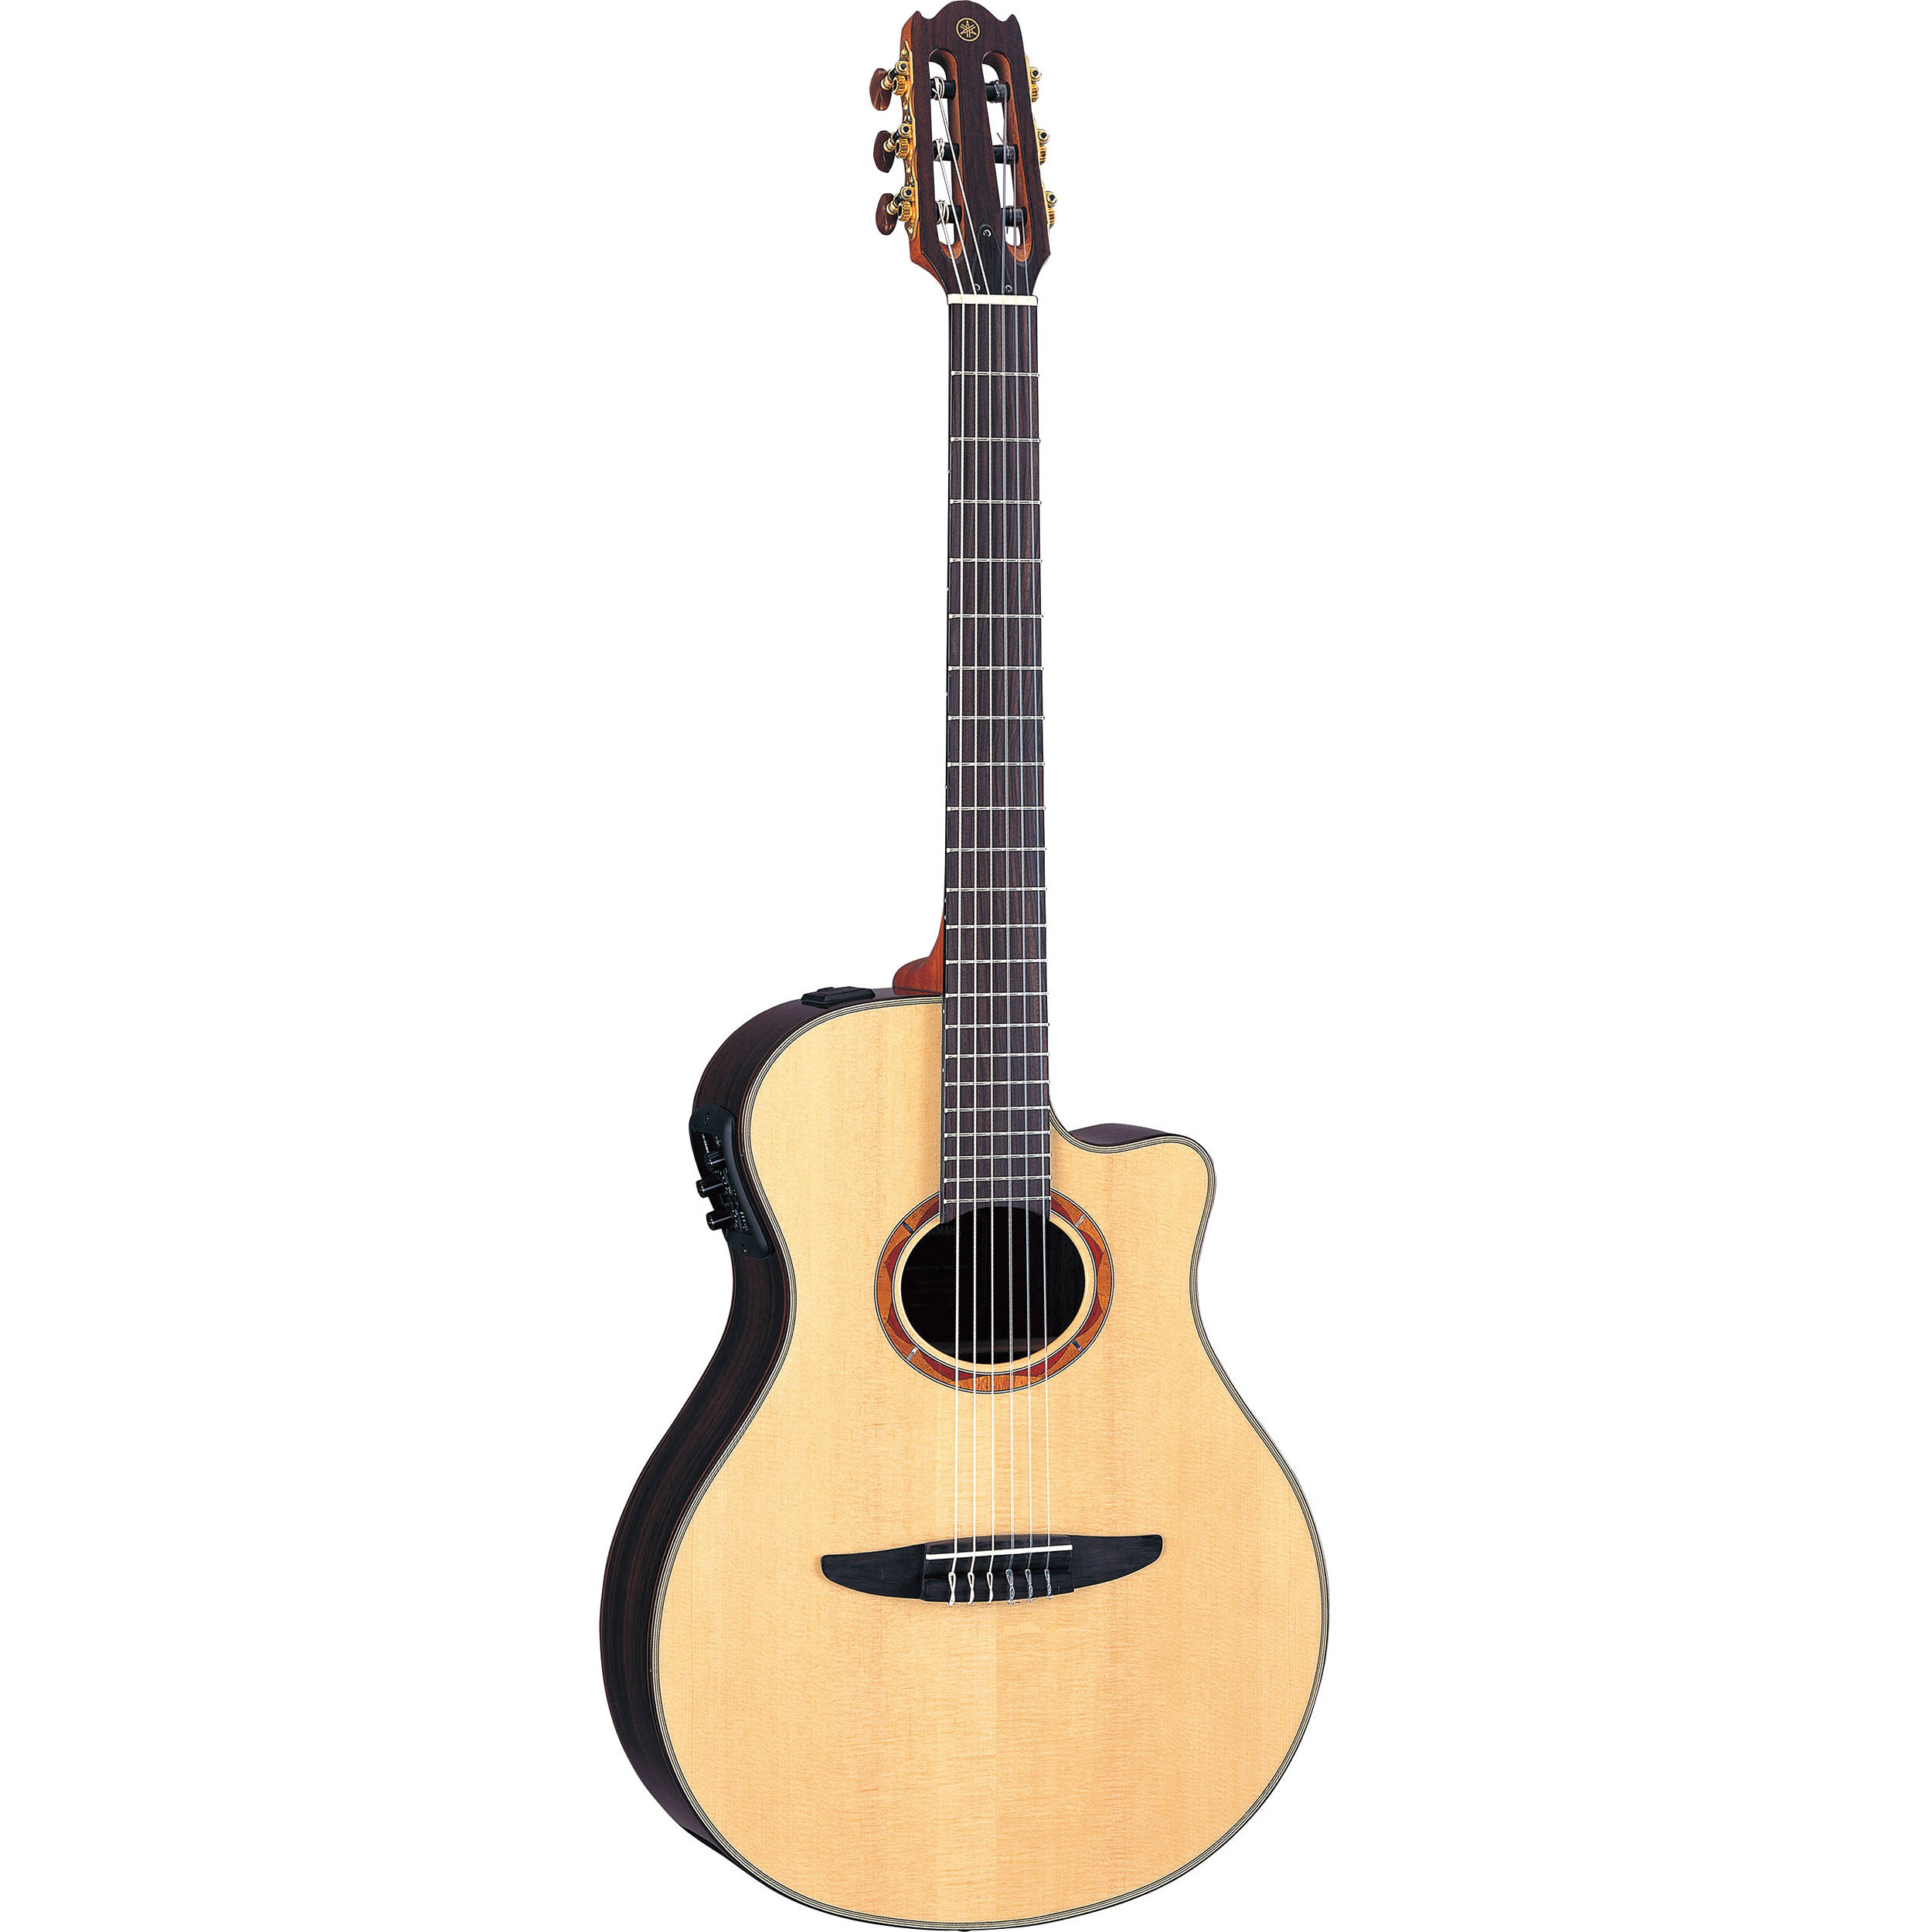 yamaha ntx1200r nylon string acoustic electric guitar ntx1200r. Black Bedroom Furniture Sets. Home Design Ideas